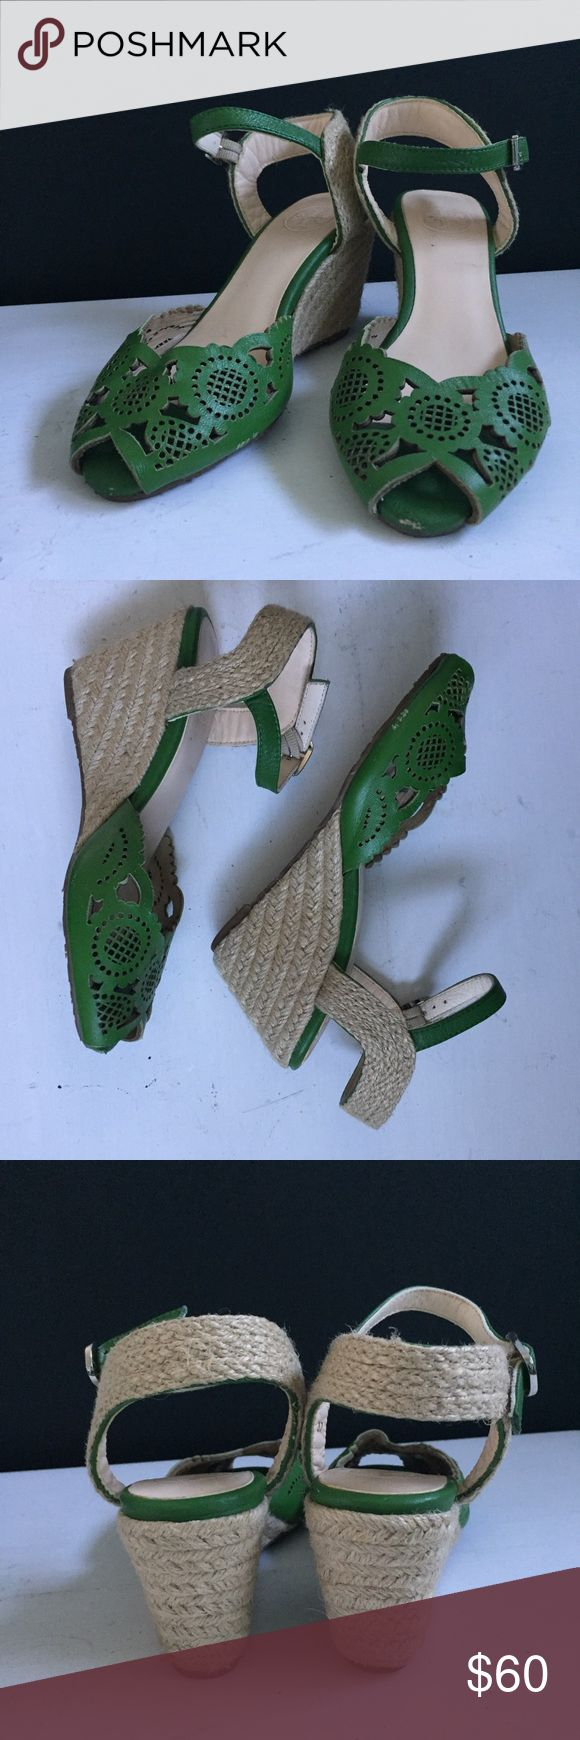 Tory Burch Green Espadrille Wedge Sandals Nice pair of lightly worn Sandals from Tory Burch.  Couple of scuffs as shown by photos.  Very little wear on the sole Tory Burch Shoes Wedges